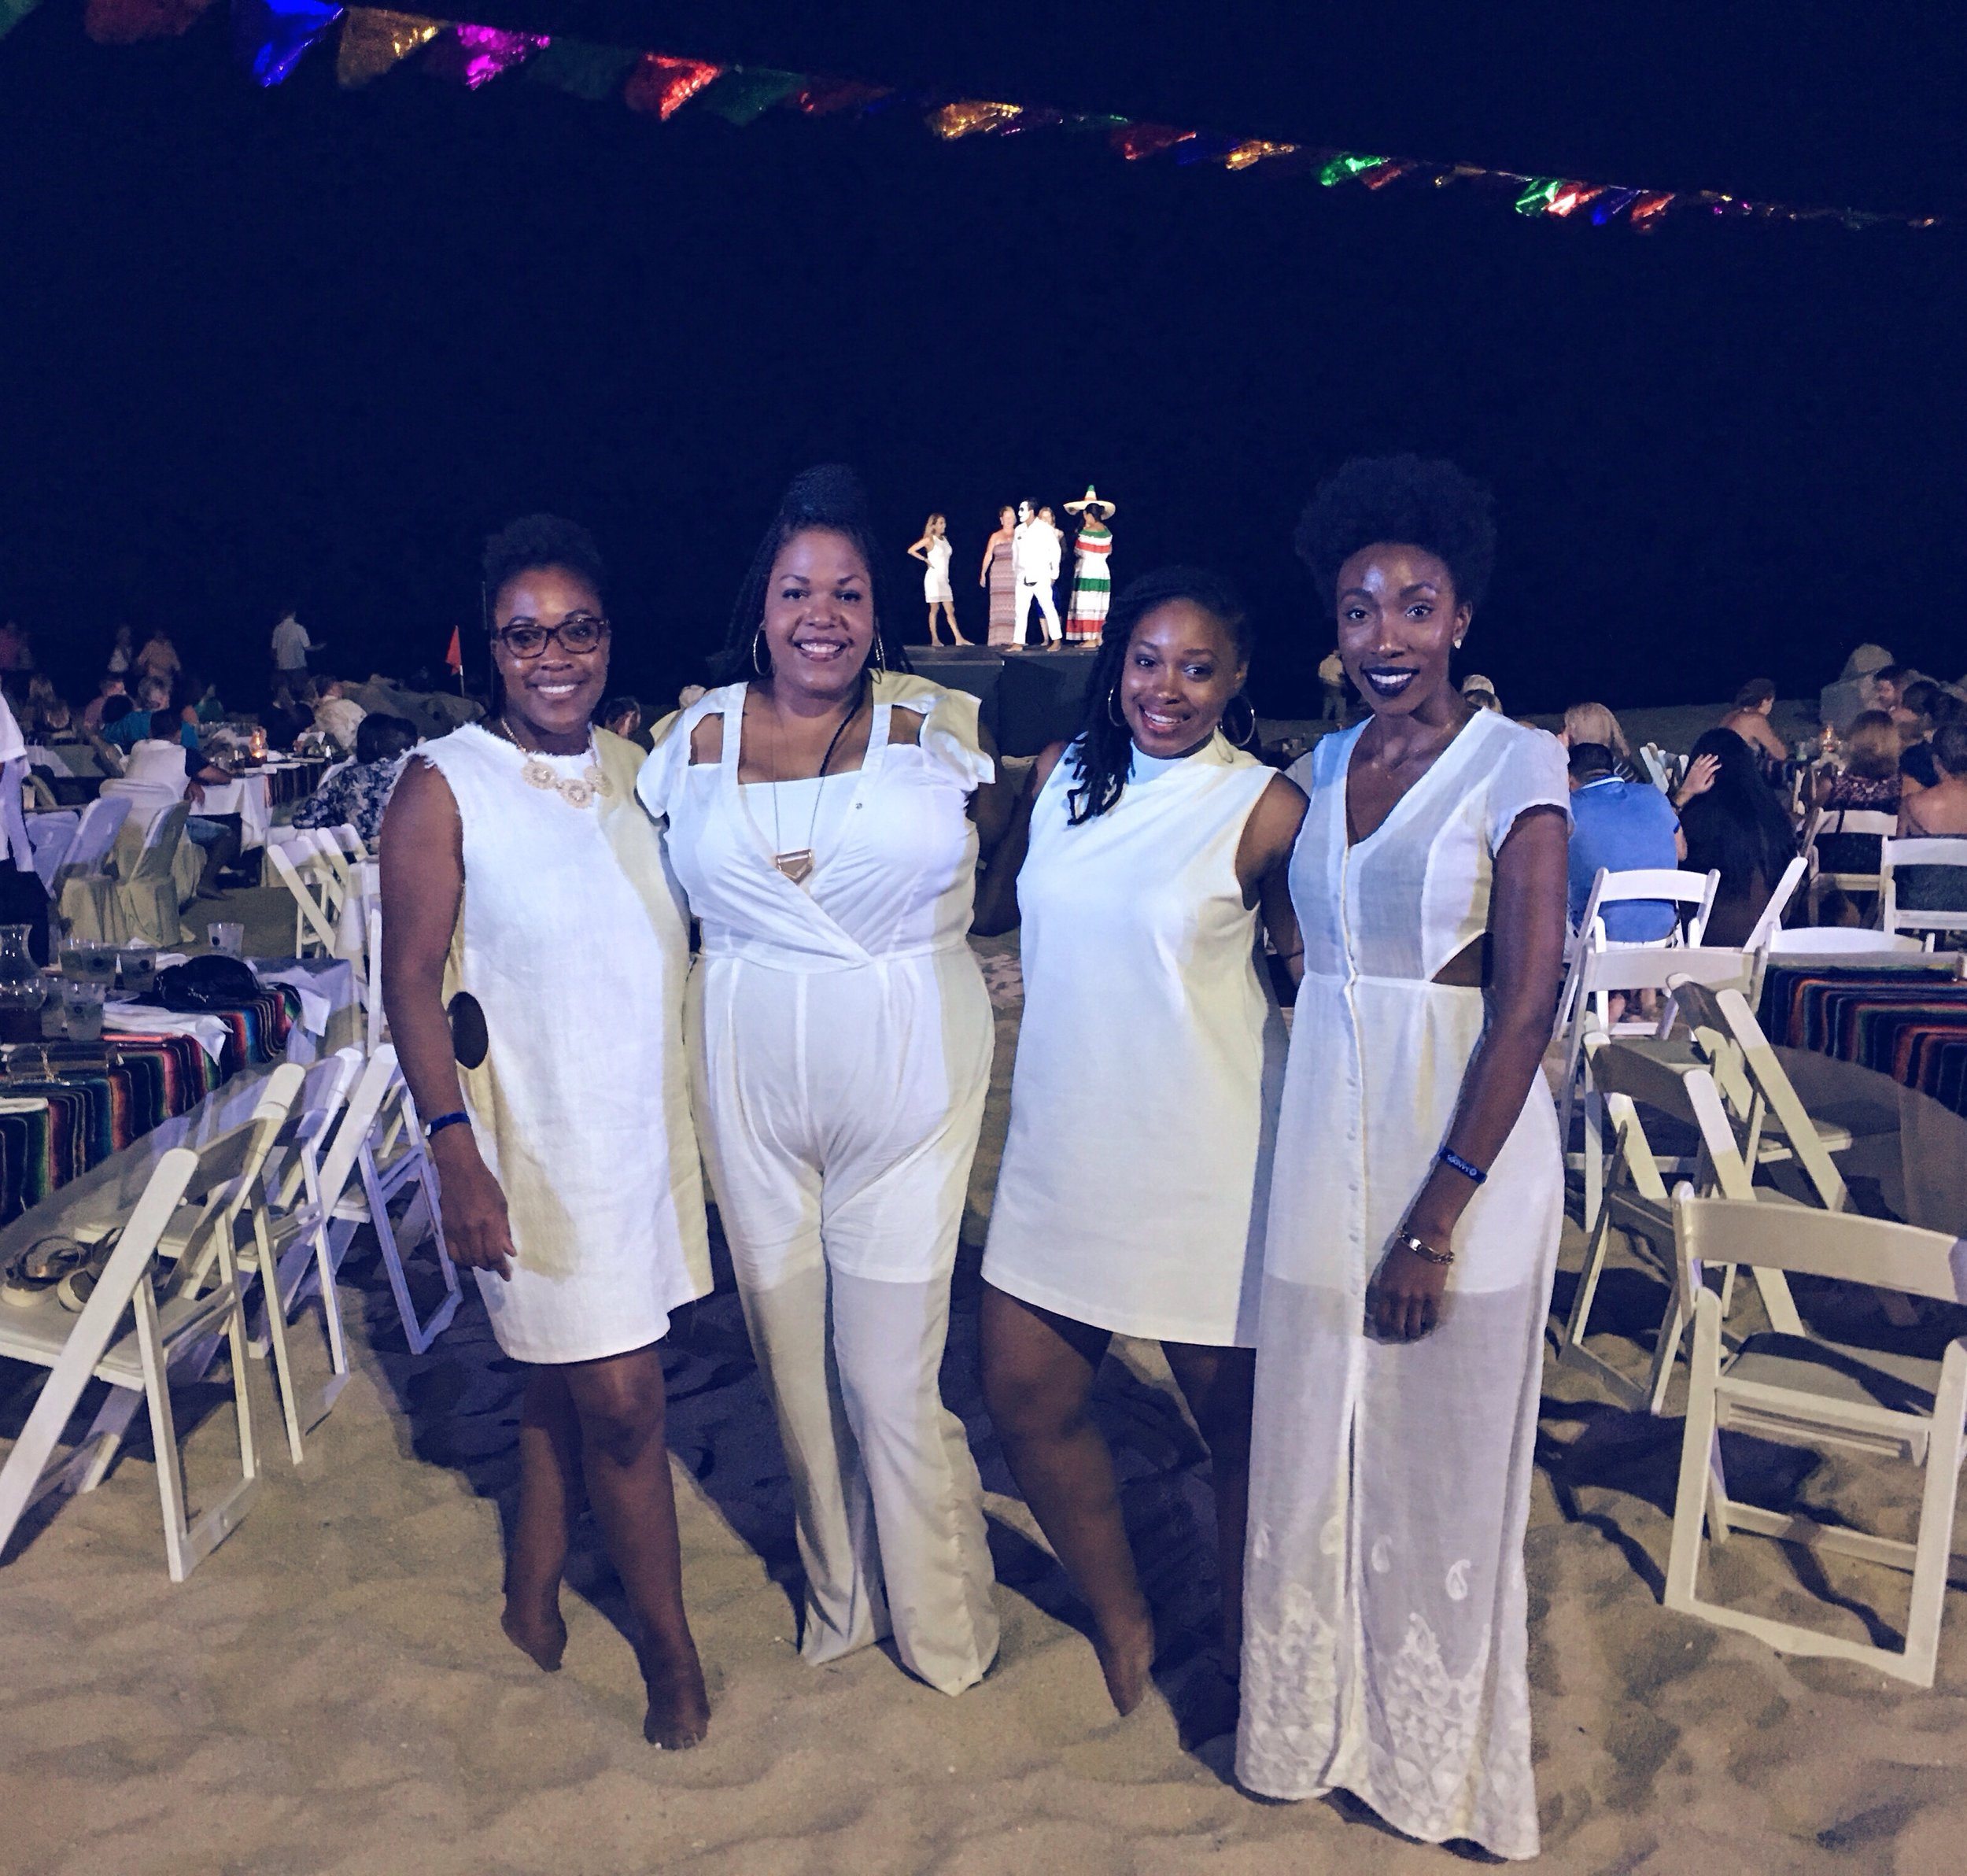 There was a White Party at our hotel on the beach with food and traditional Mexican dancing and music, so we had to come out and Slay!!!